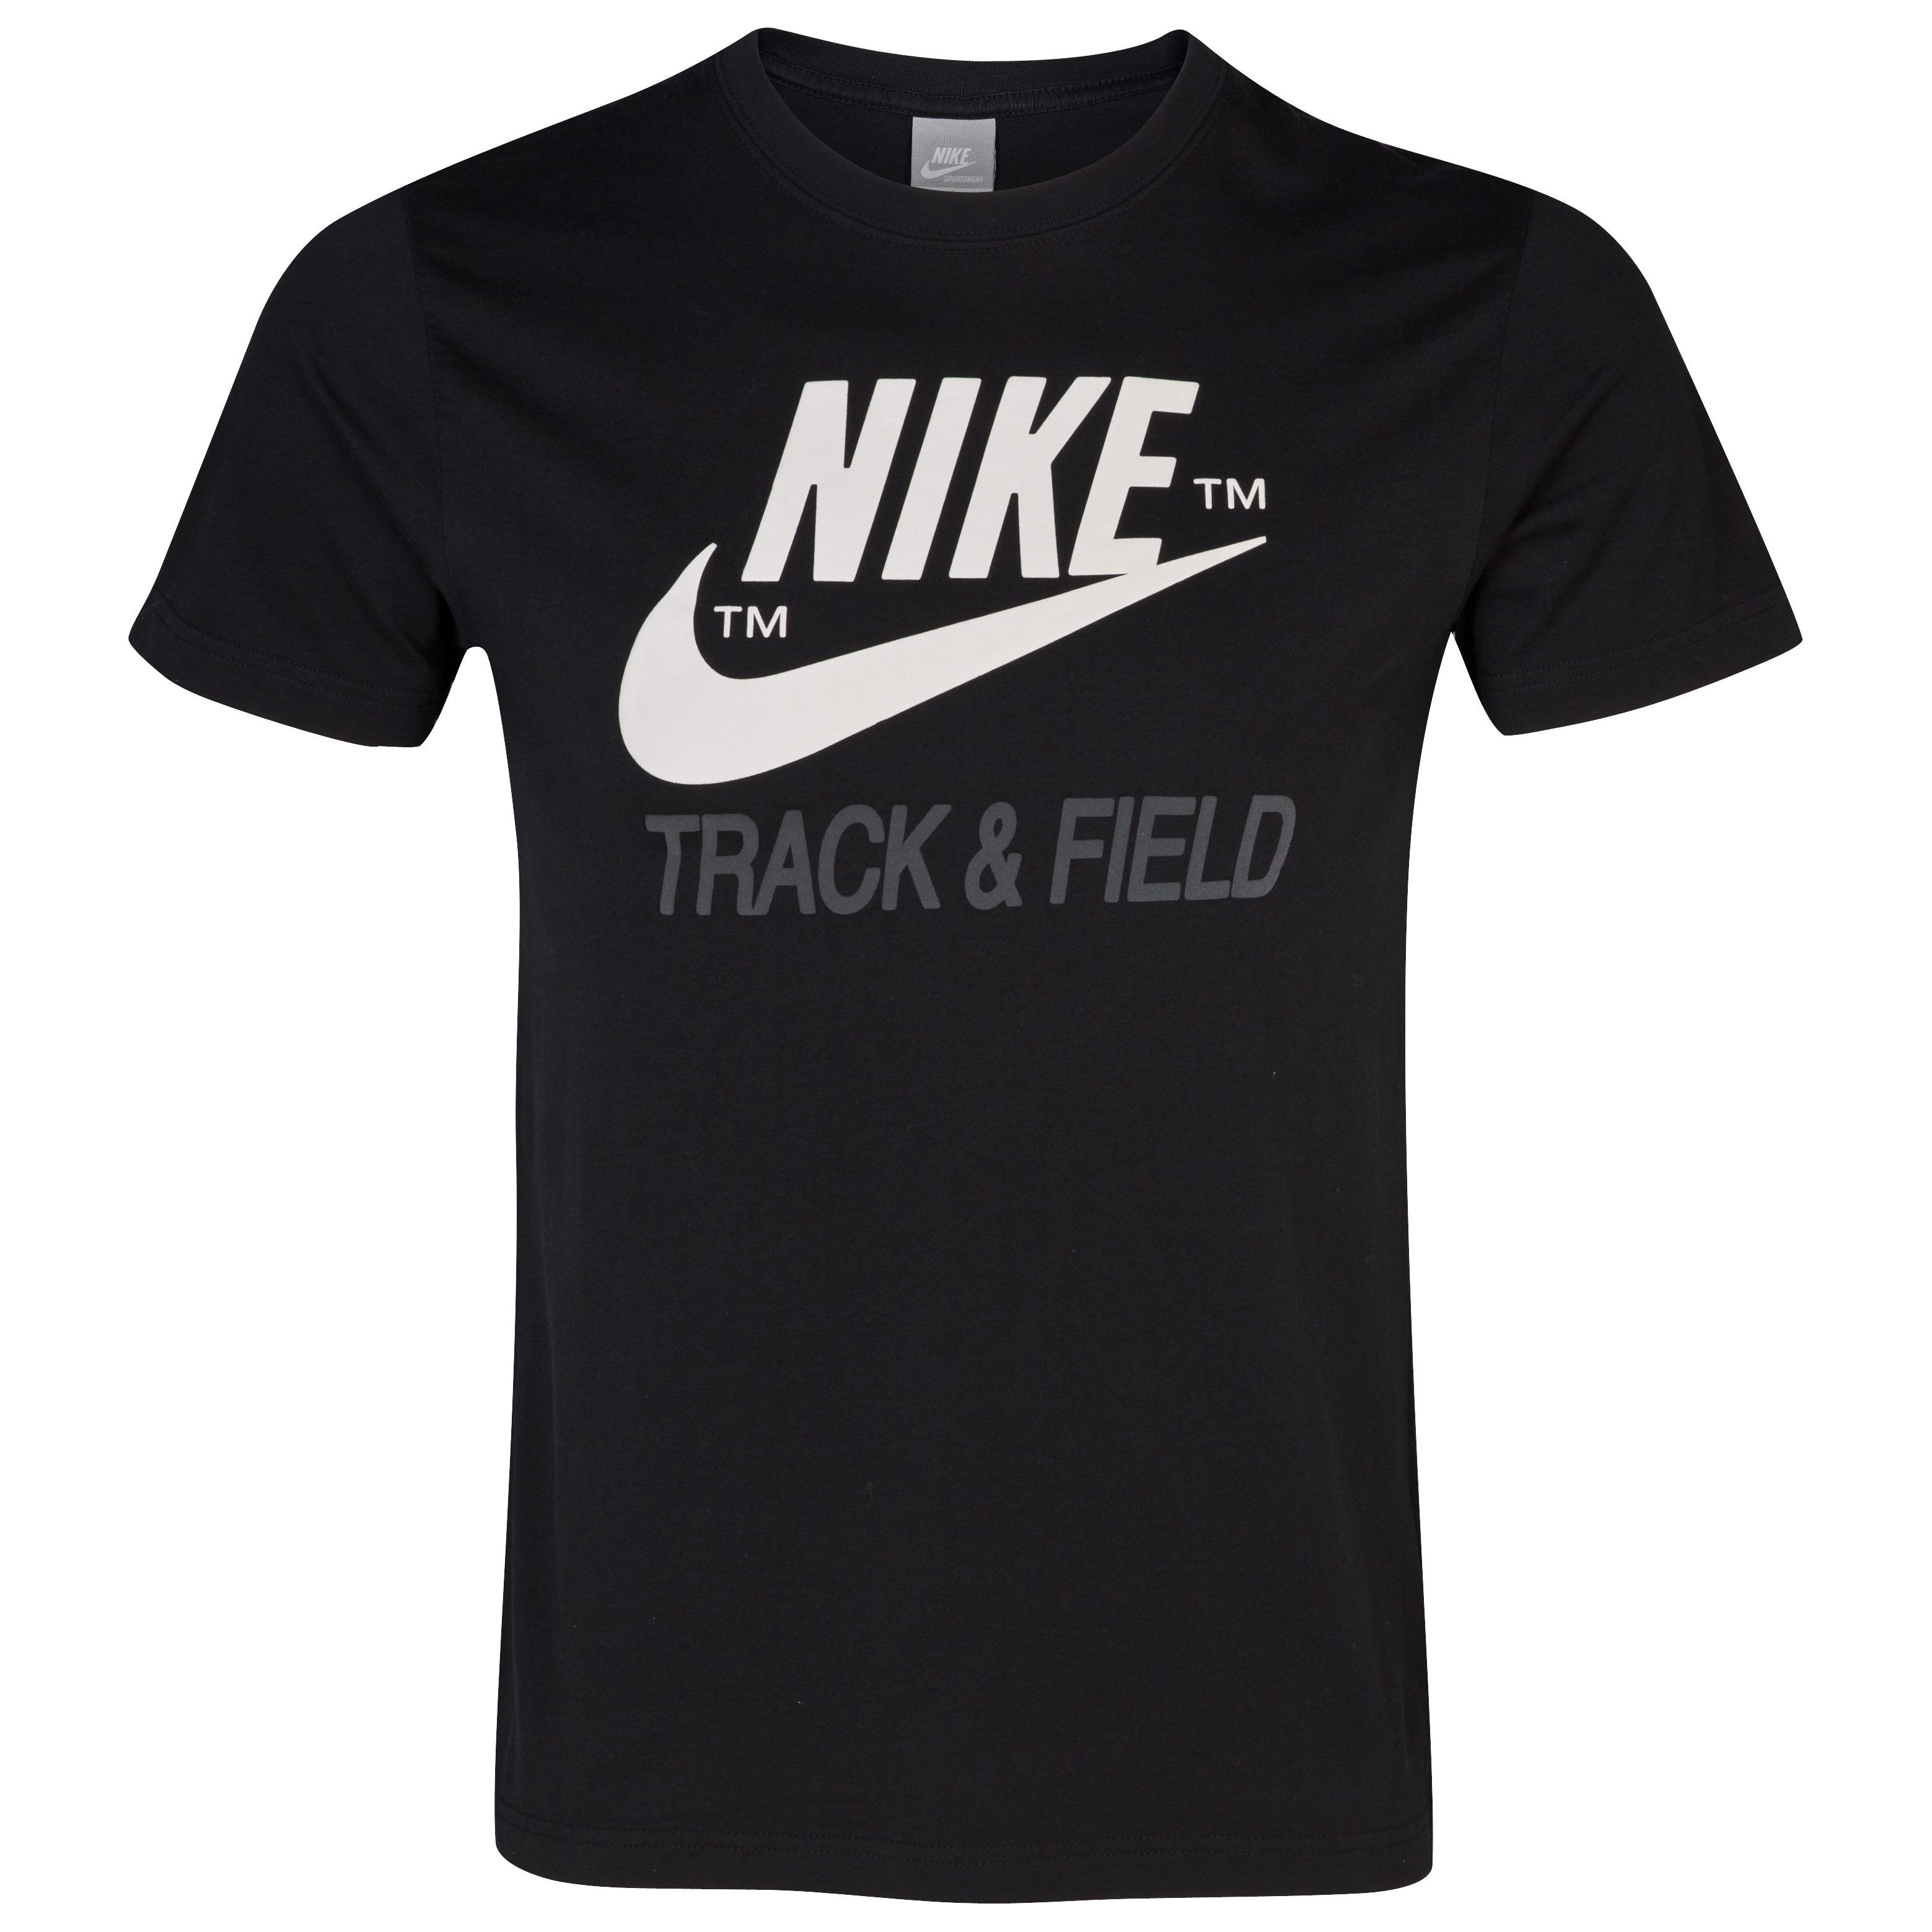 Nike NTF T-Shirt - Black/Anthracite